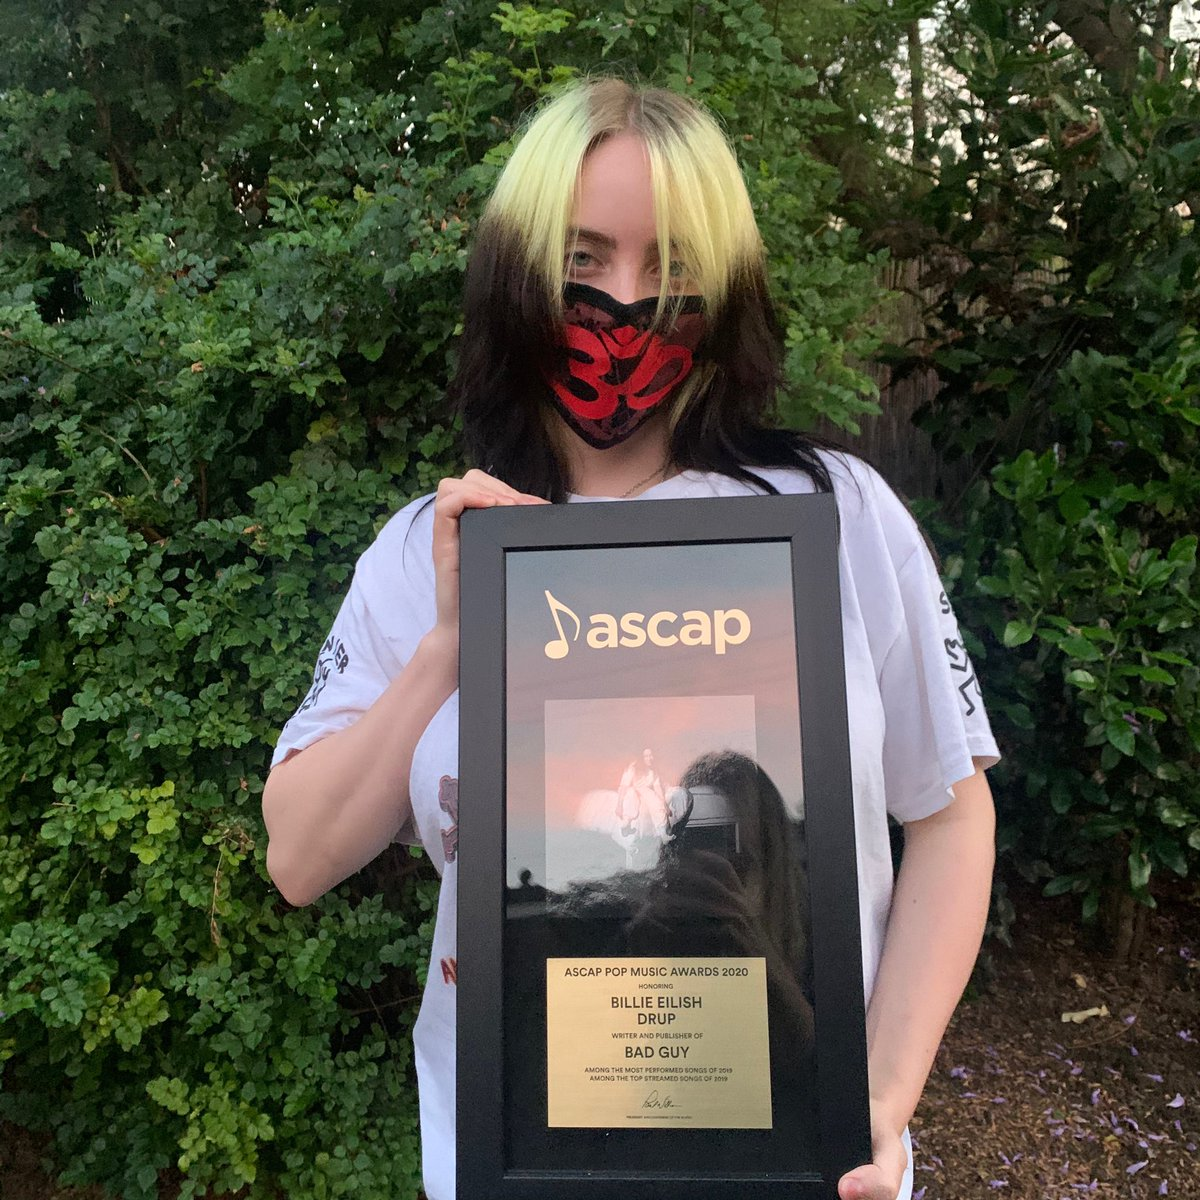 I'm the bad guy, duh   @billieeilish with her #ASCAPPop  for #BadGuy. #ASCAPAwards<br>http://pic.twitter.com/bJ0ghy2DEN